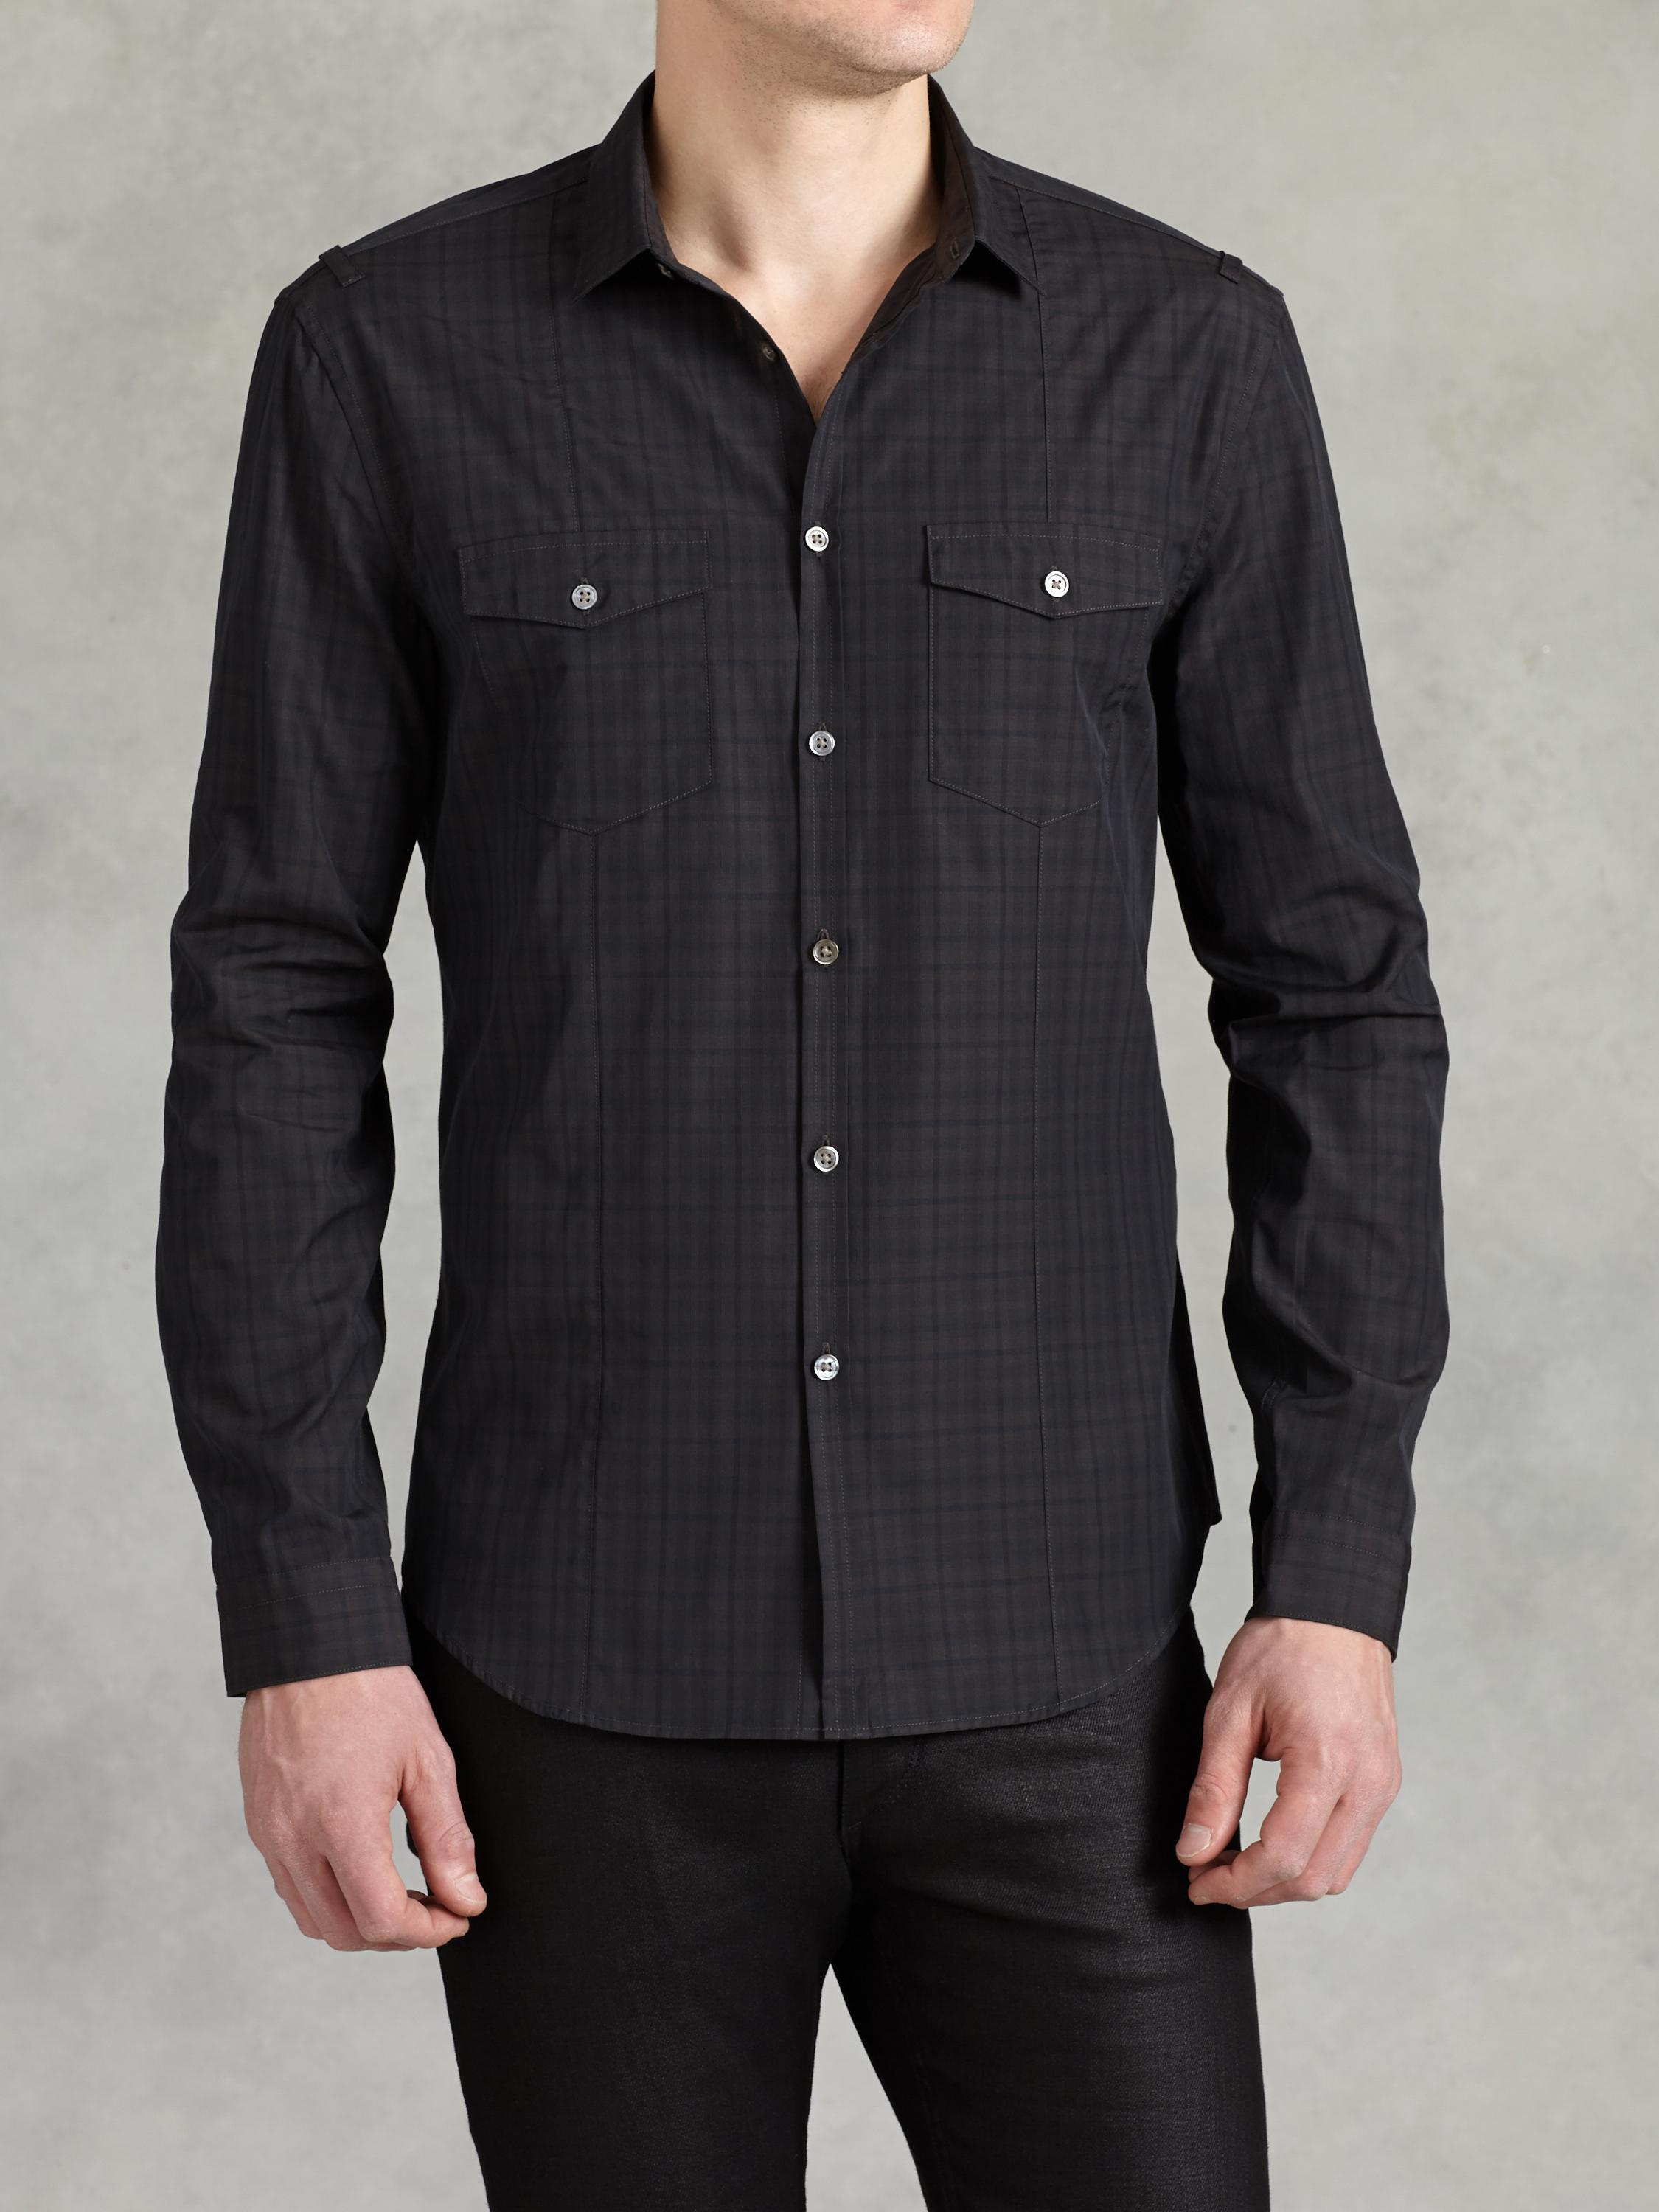 Cotton Vintage Plaid Shirt